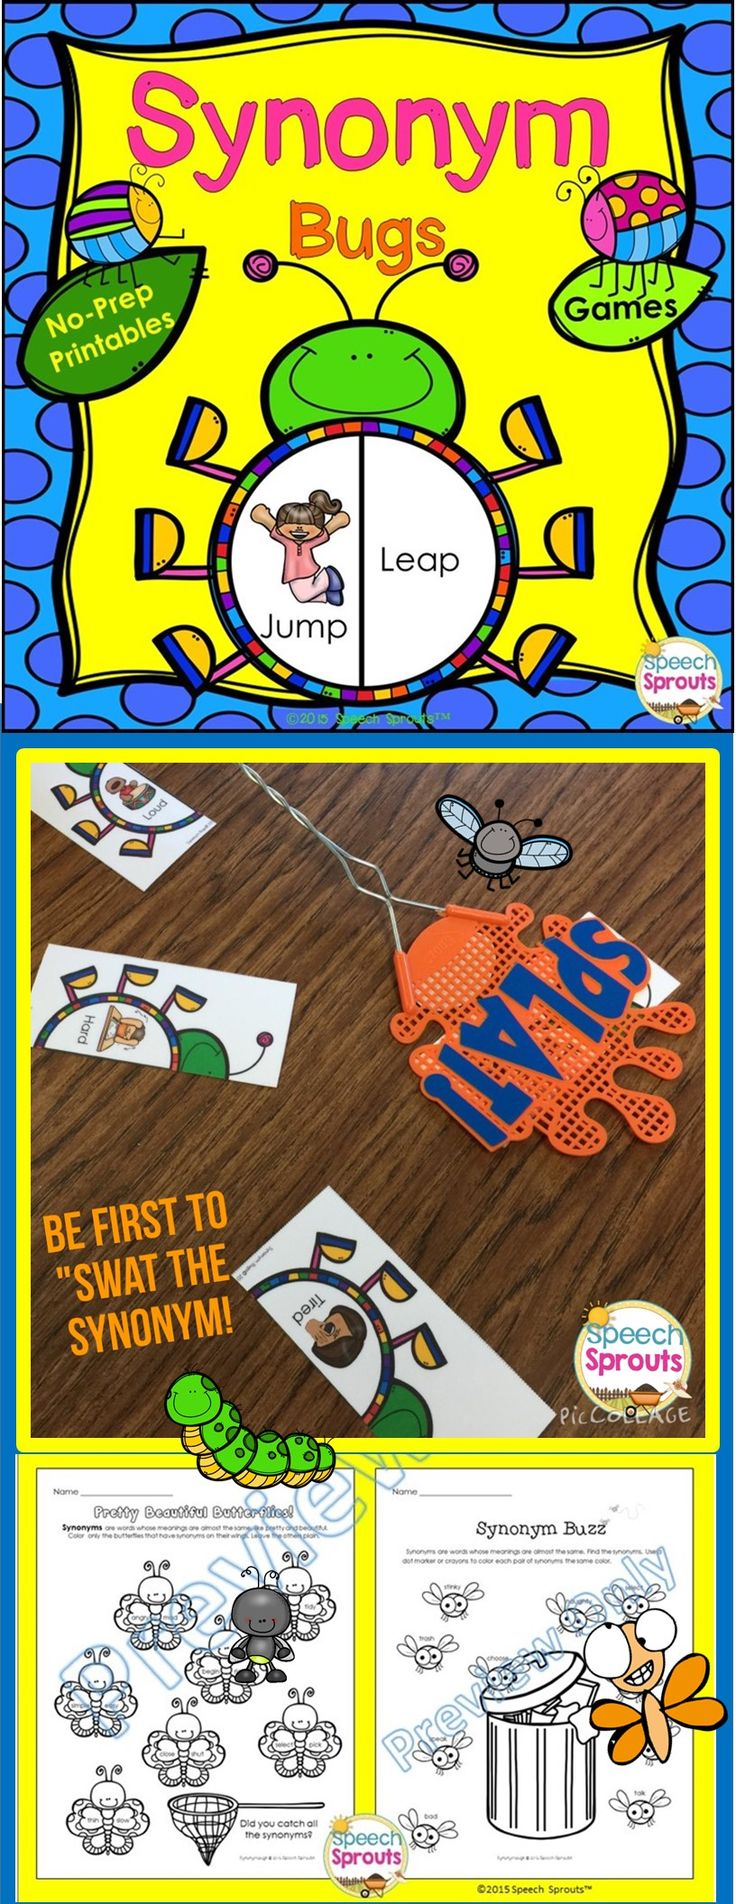 $ Have your kids buzzing about synonyms! Grab a flyswatter and be the first to swat the matching synonyms as you build your bug collection Grab the hole puncher and eat through some leaves as you find synonyms in Synonym Crunch! 15 no-prep interactive activities for your classroom/ speech therapy room, or home practice